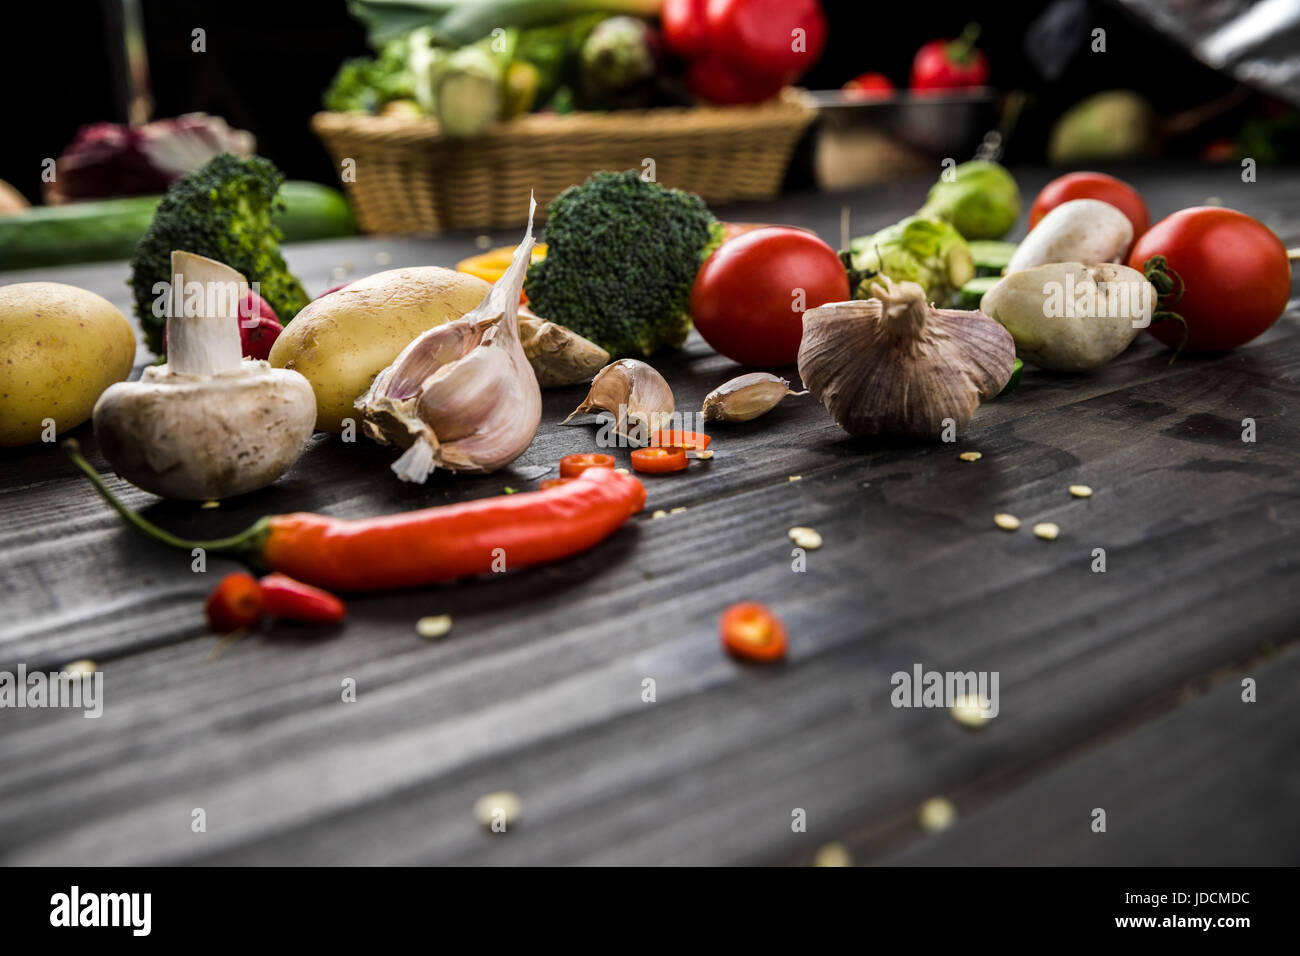 Close-up view of fresh seasonal vegetables on wooden table background - Stock Image